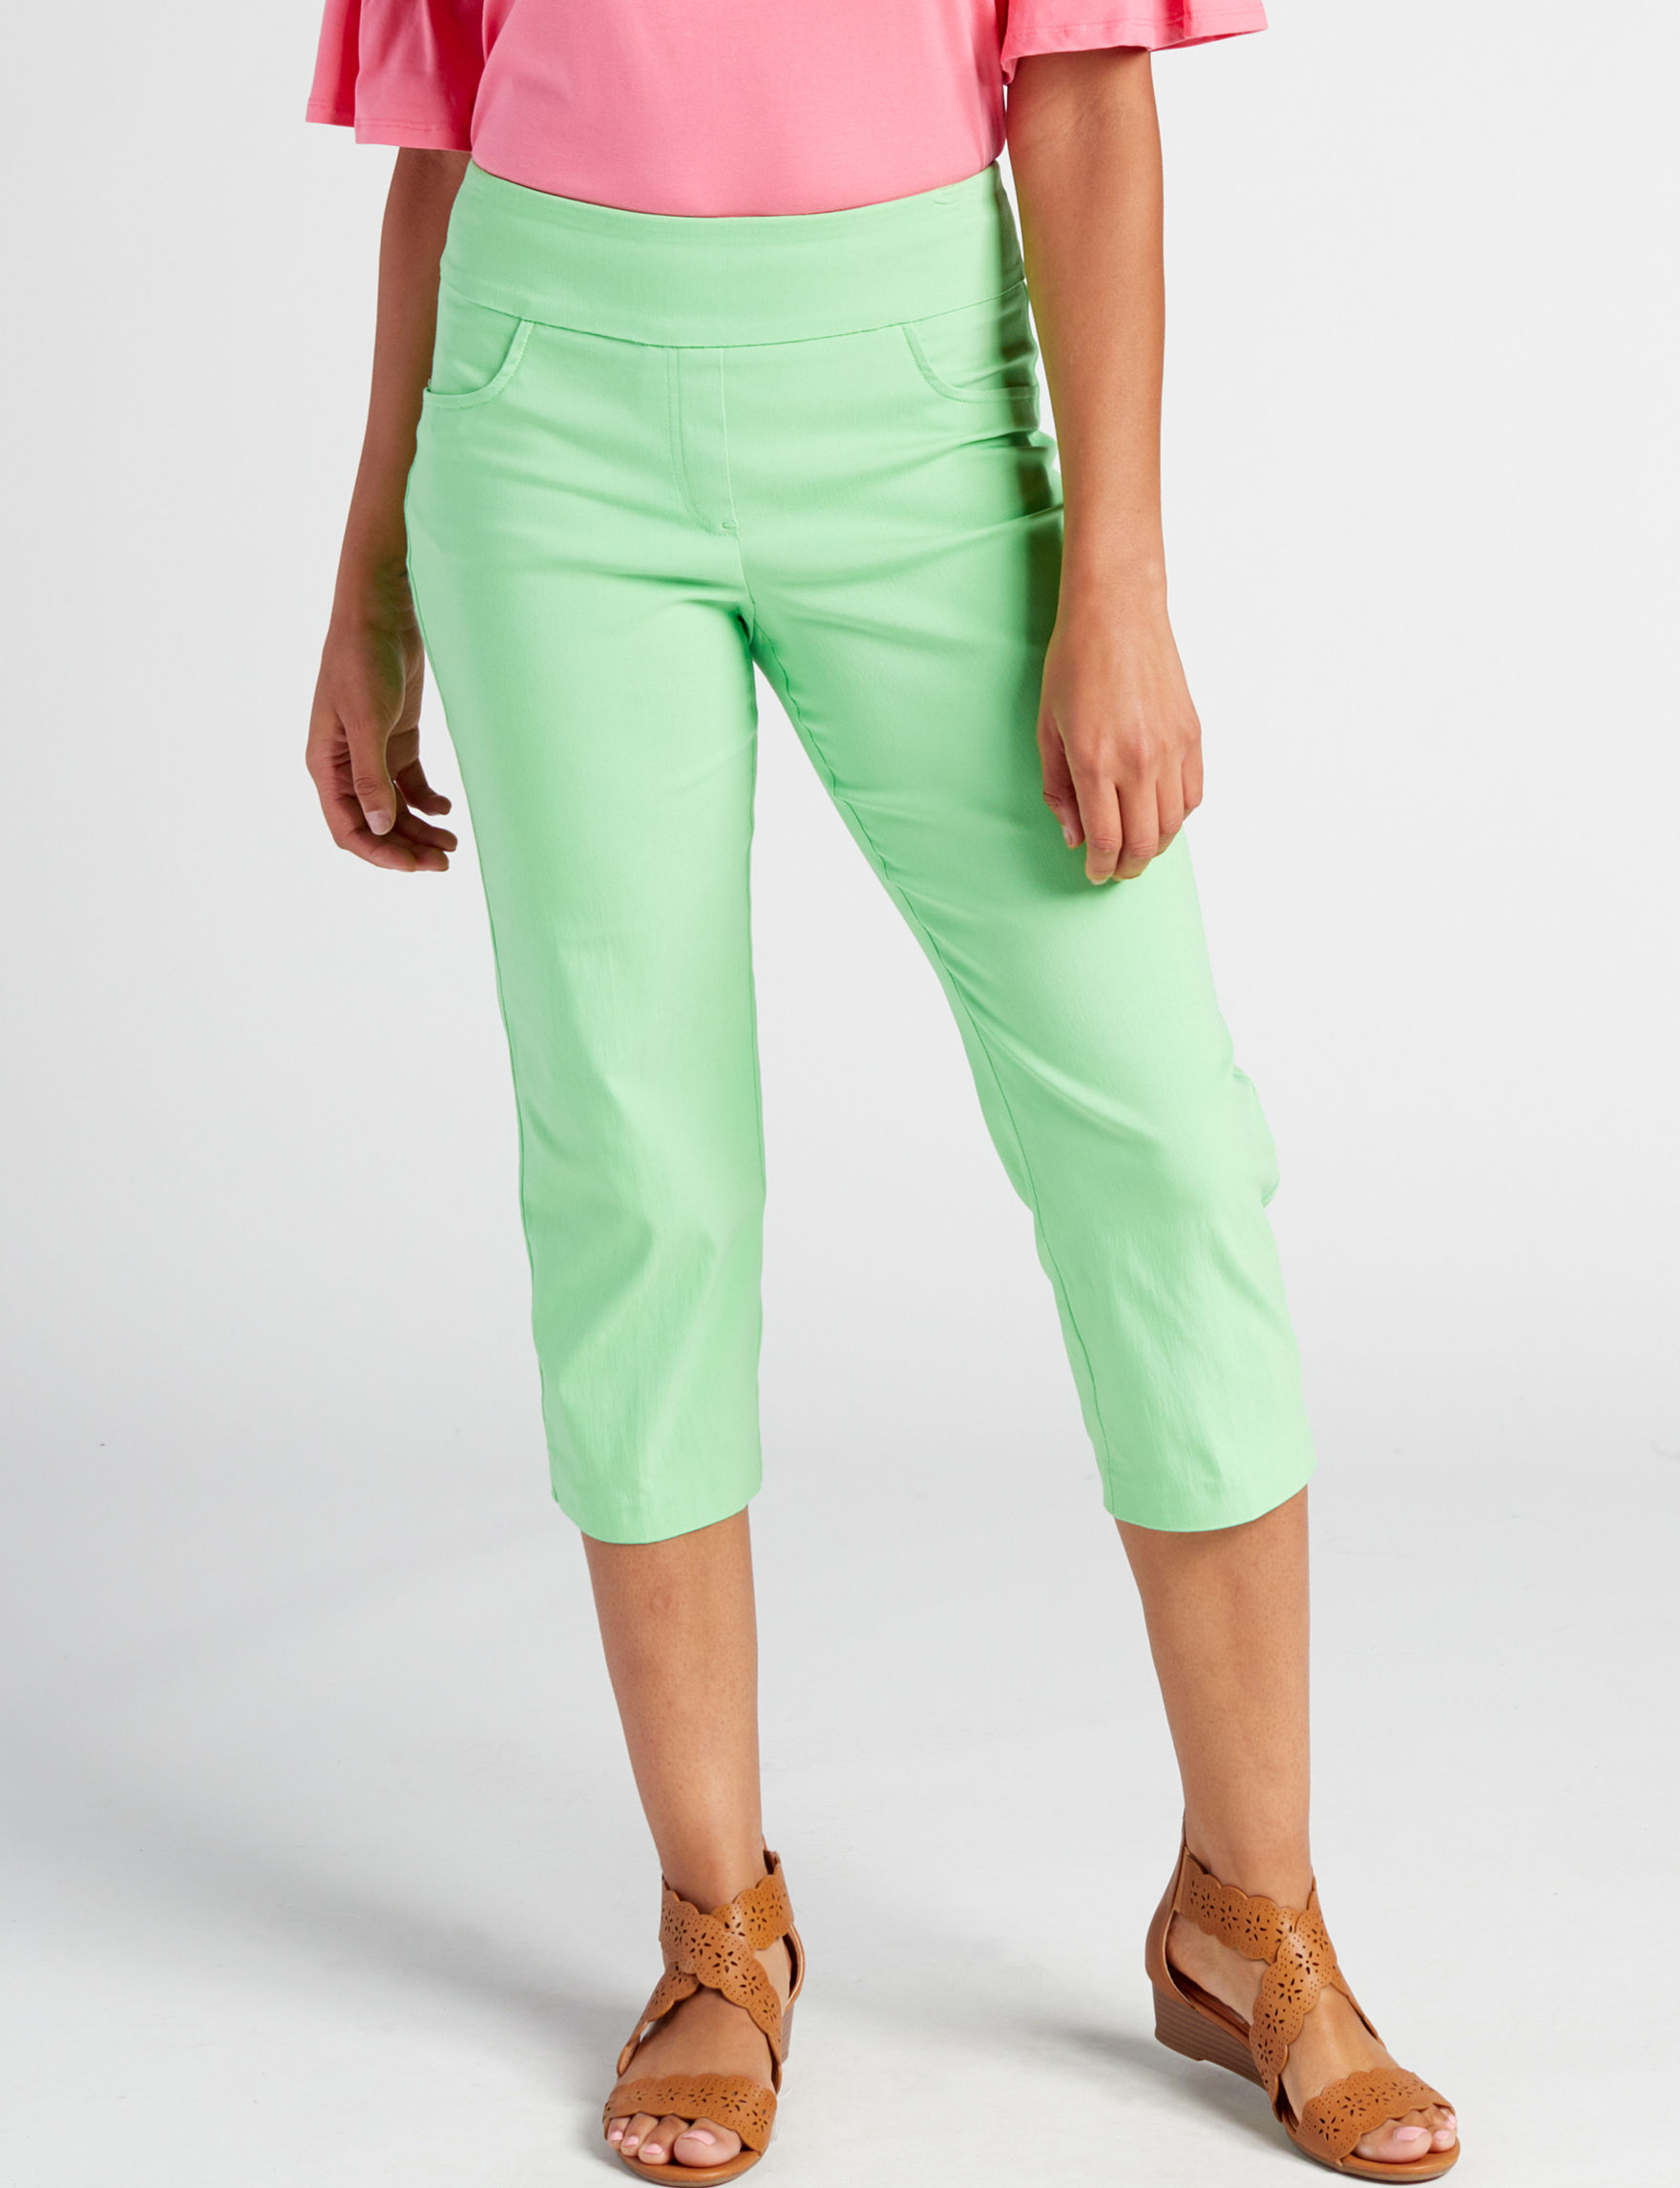 Ruby Road Green Capris & Crops Straight Stretch